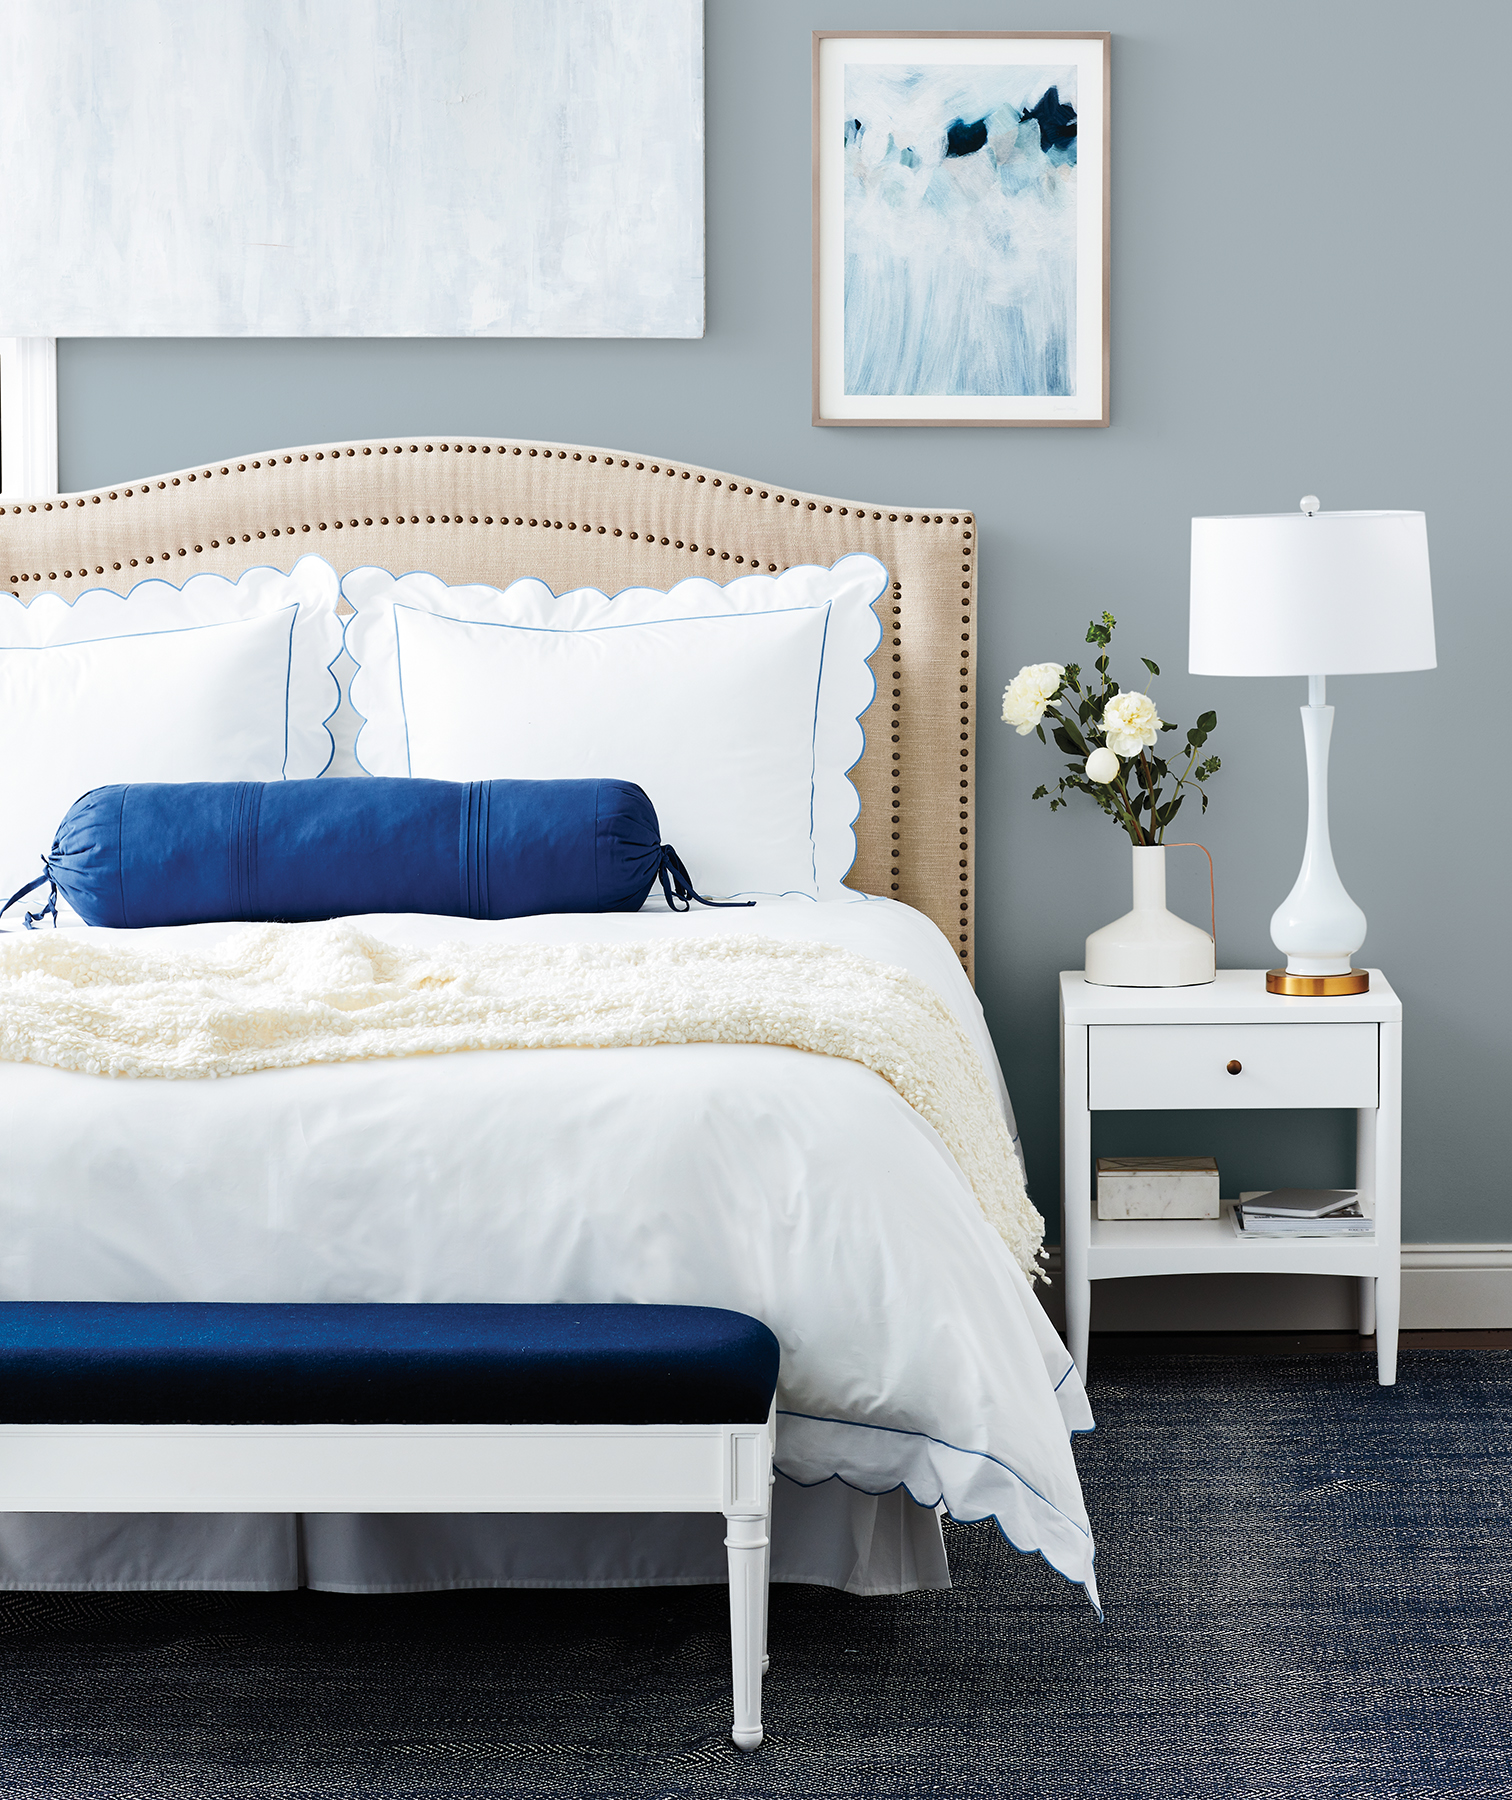 Very Economical Bedroom Nightstands Reveal a Personal Side